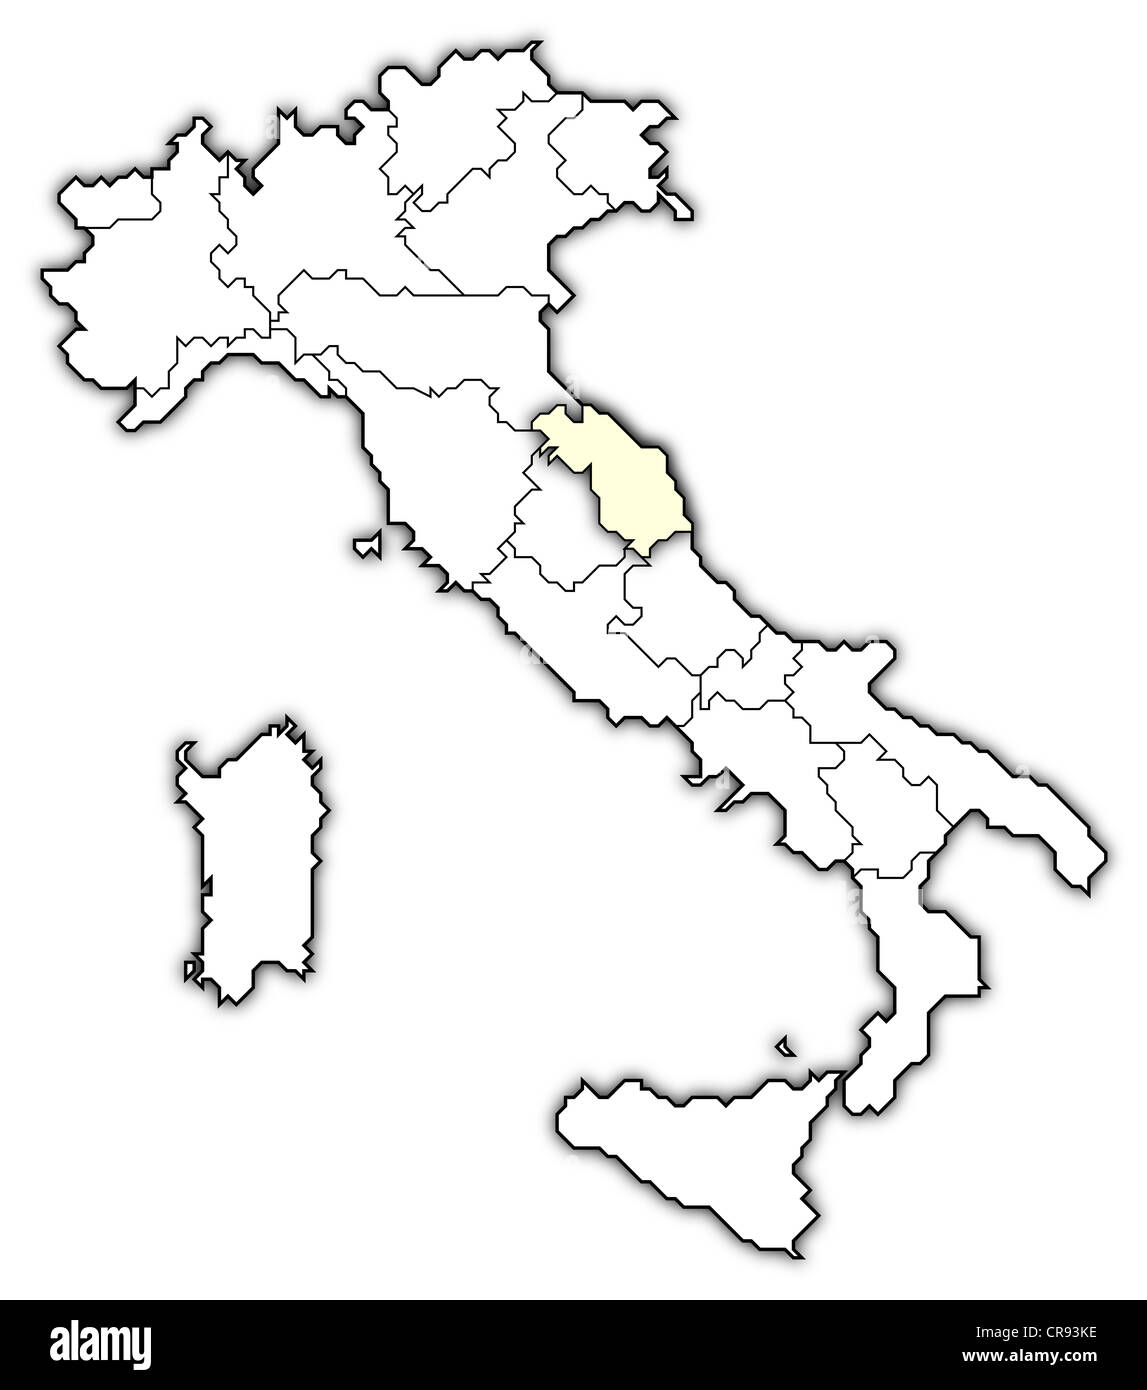 Political Map Of Italy With The Several Regions Where Marche Is